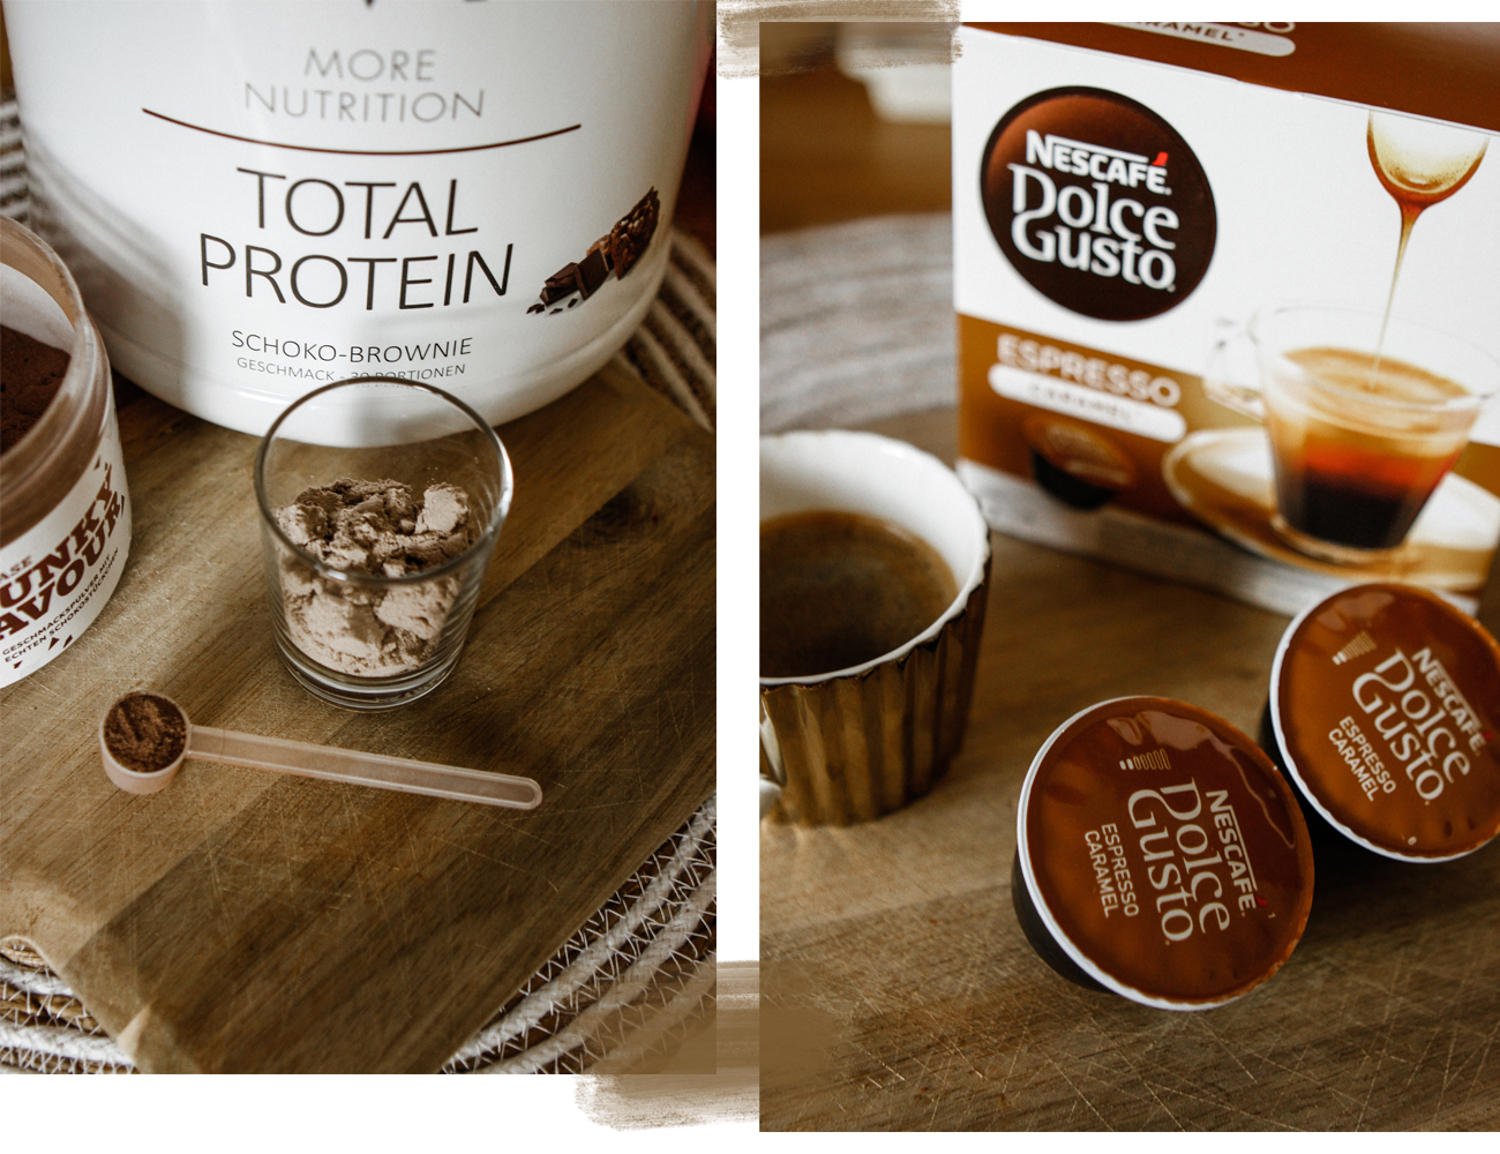 Lauralamode Breakfast Nescafe Dolce Gusto Breakie Porridge Coffee Kaffee Healthy Recipe Rezept Breakfast Recipe Protein Chocolate Caramel Espresso Fitnessblogger Berlin Munich11